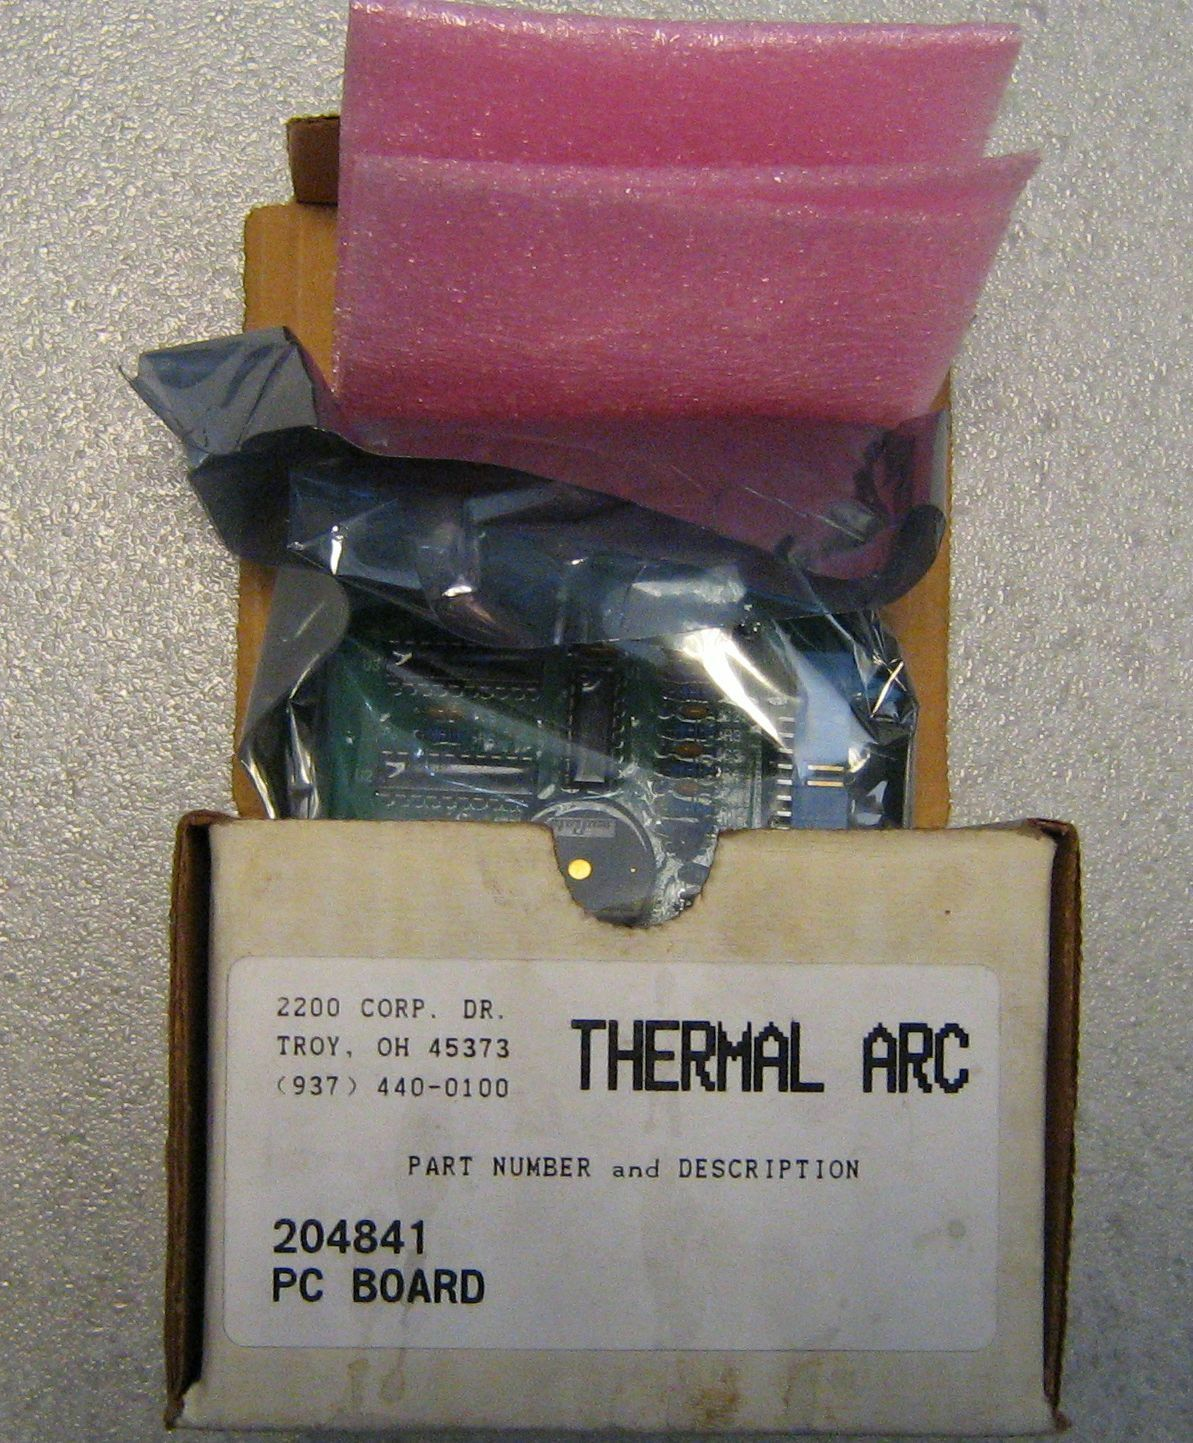 Welding Made PCB AFFICHAGE Thermique Arc 204841 Hobart Soudeur Original Made Welding in USA c84bb4